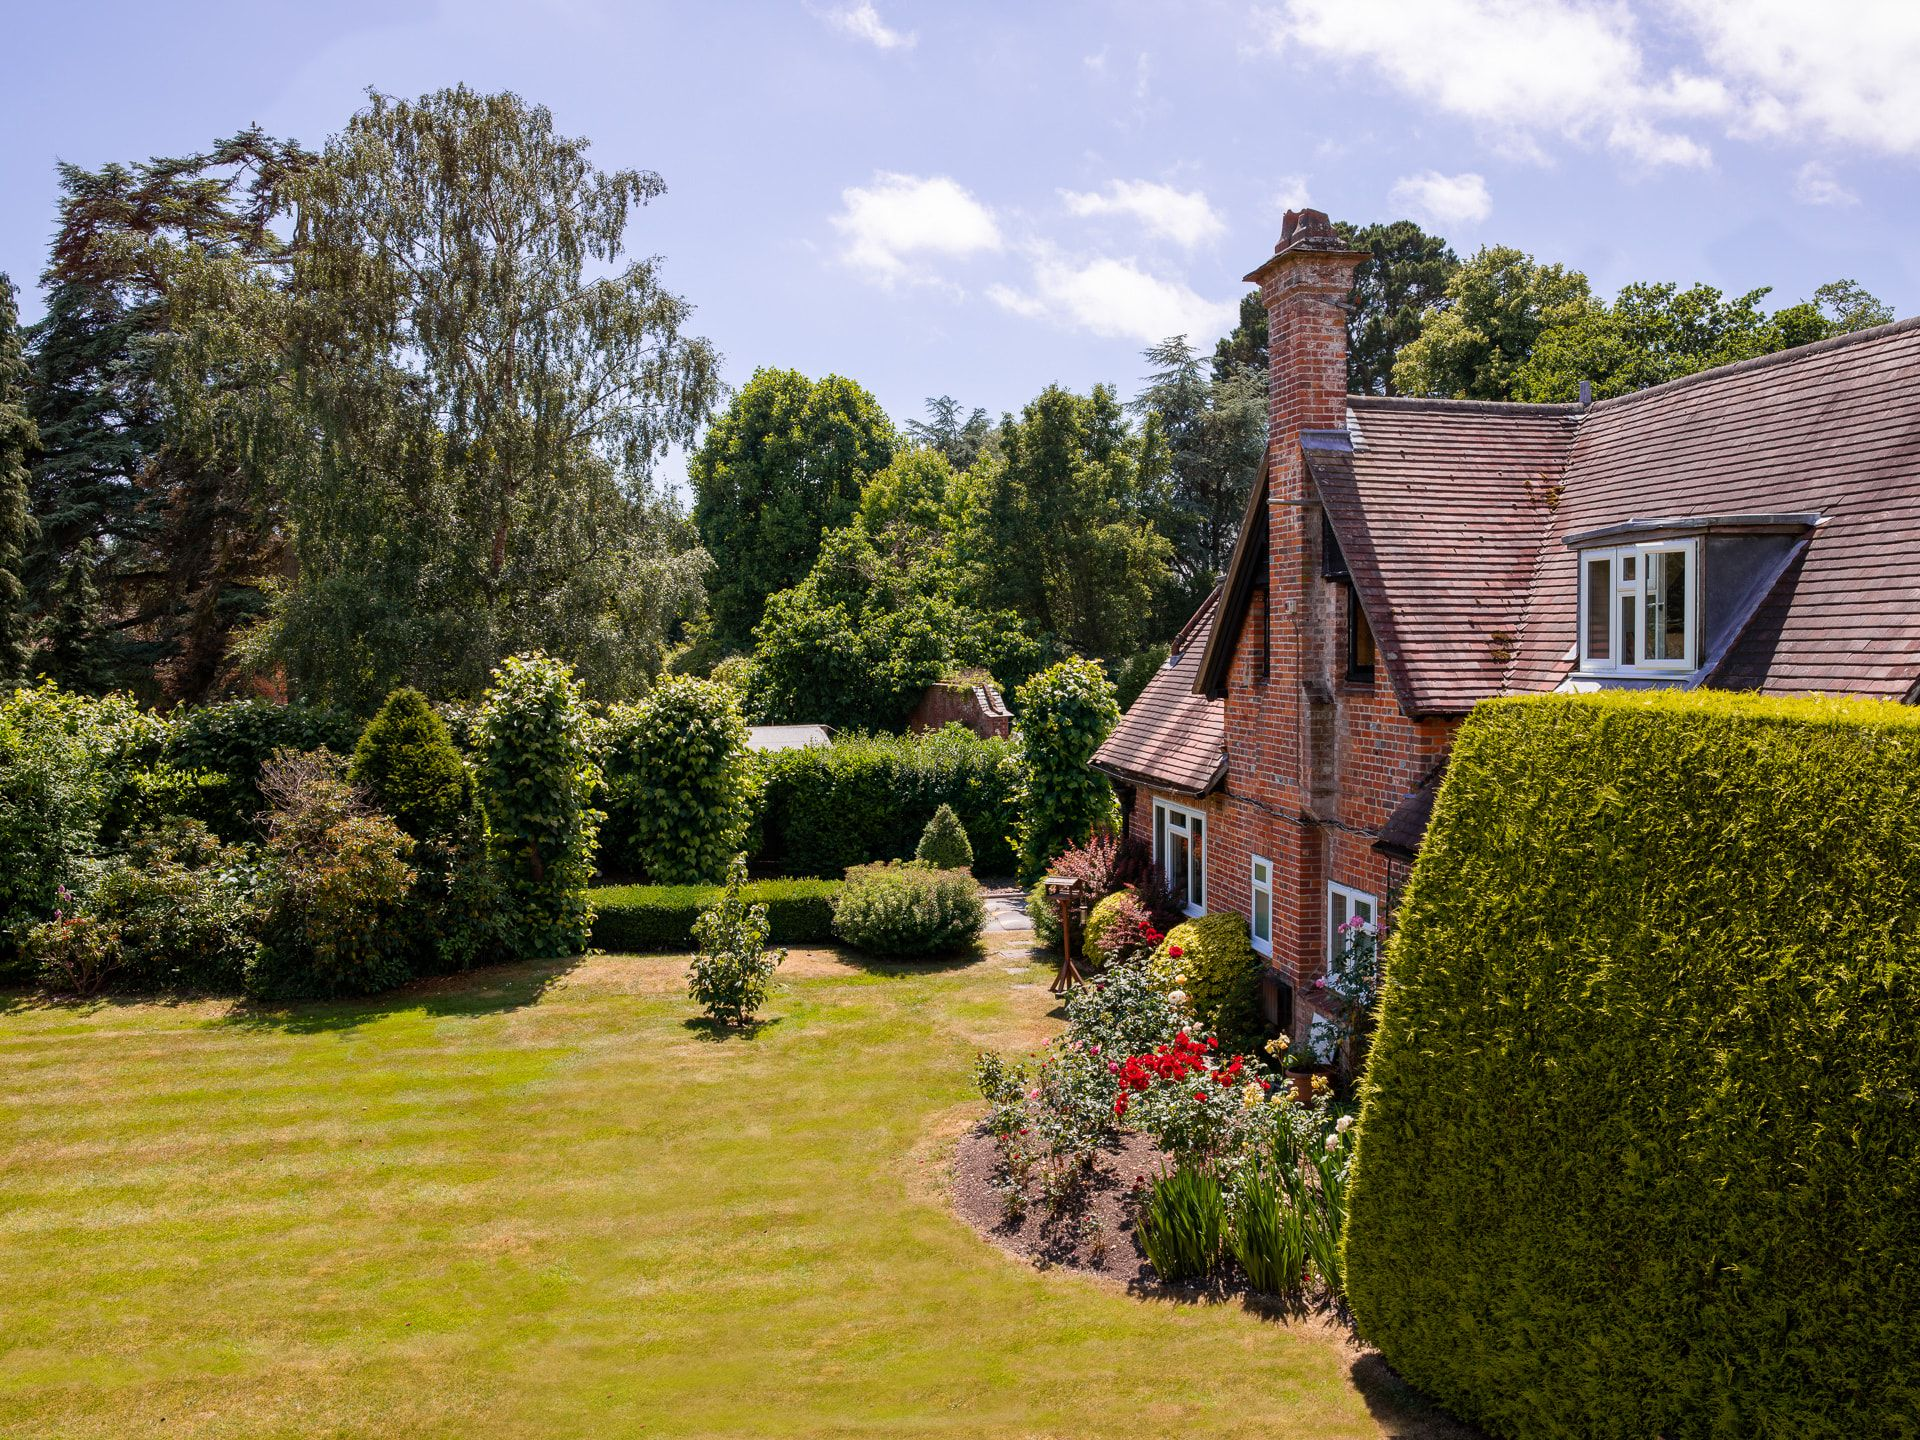 Hotels in Brockenhurst holidays at Cool Places